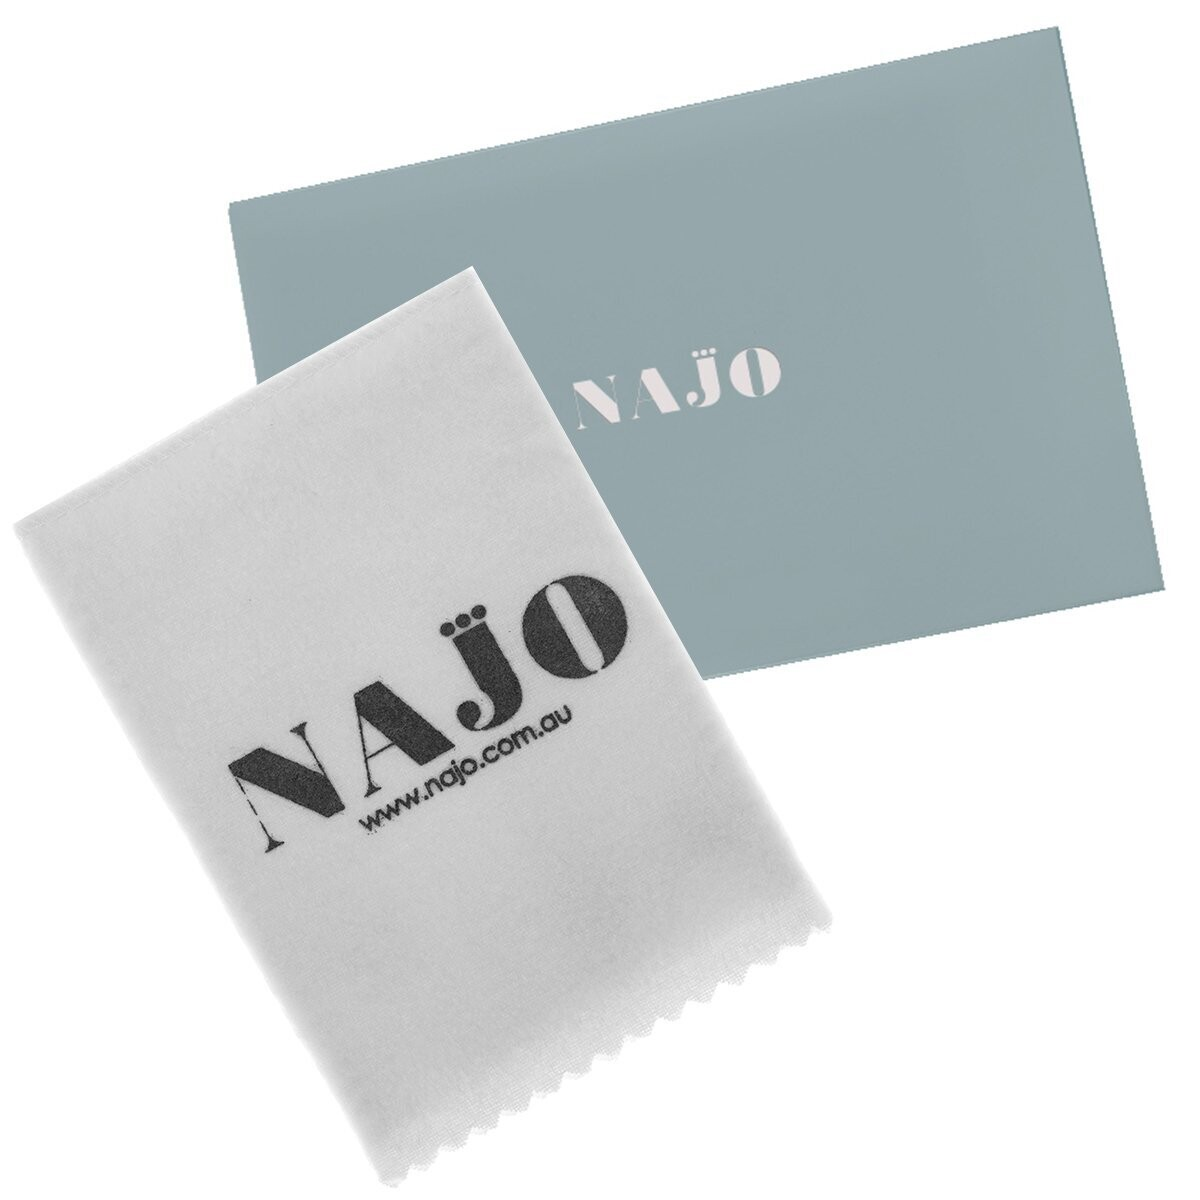 Najo Cleaning Cloth